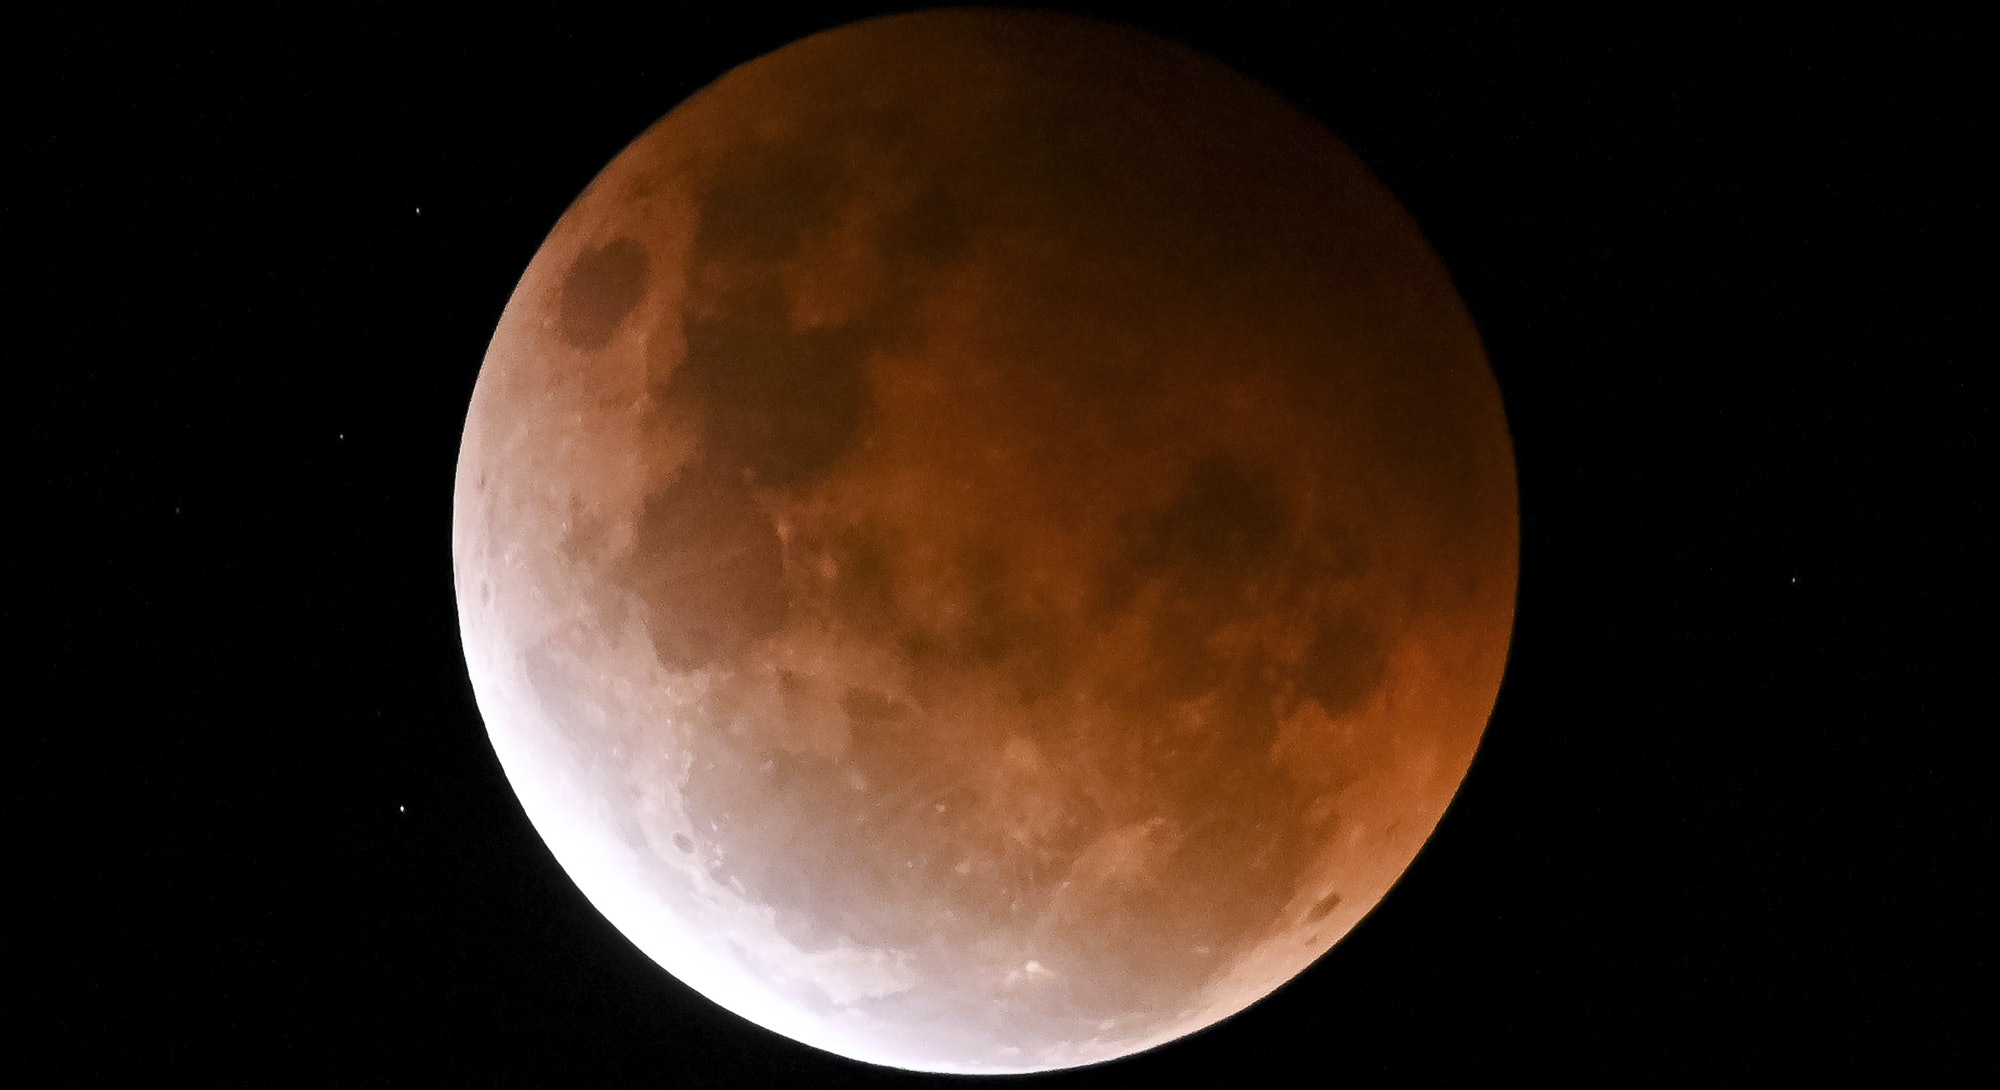 SYDNEY, AUSTRALIA - MAY 26: The full moon, known as a âsuper flower blood moonâ, is seen during its maximum lunar eclipse phase, in Sydney, Australia, on May 26, 2021. The full moon on Wednesday will be the year's biggest âsuper moonâ and feature the first total lunar eclipse in more than two years, known as a âsuper blood moonâ. A âsuper blood moonâ is when a total lunar eclipse (or âblood moonâ) happens at the same time as a âsuper moonâ, when the moon will be at perigee, or the closest point to Earth in its orbit, making it appear about 7% larger than normal and 15% brighter. The eclipse will be visible from Australia, New Zealand, the Pacific, South-East Asia and parts of North and South America at the same time. (Photo by Steven Saphore/Anadolu Agency via Getty Images)